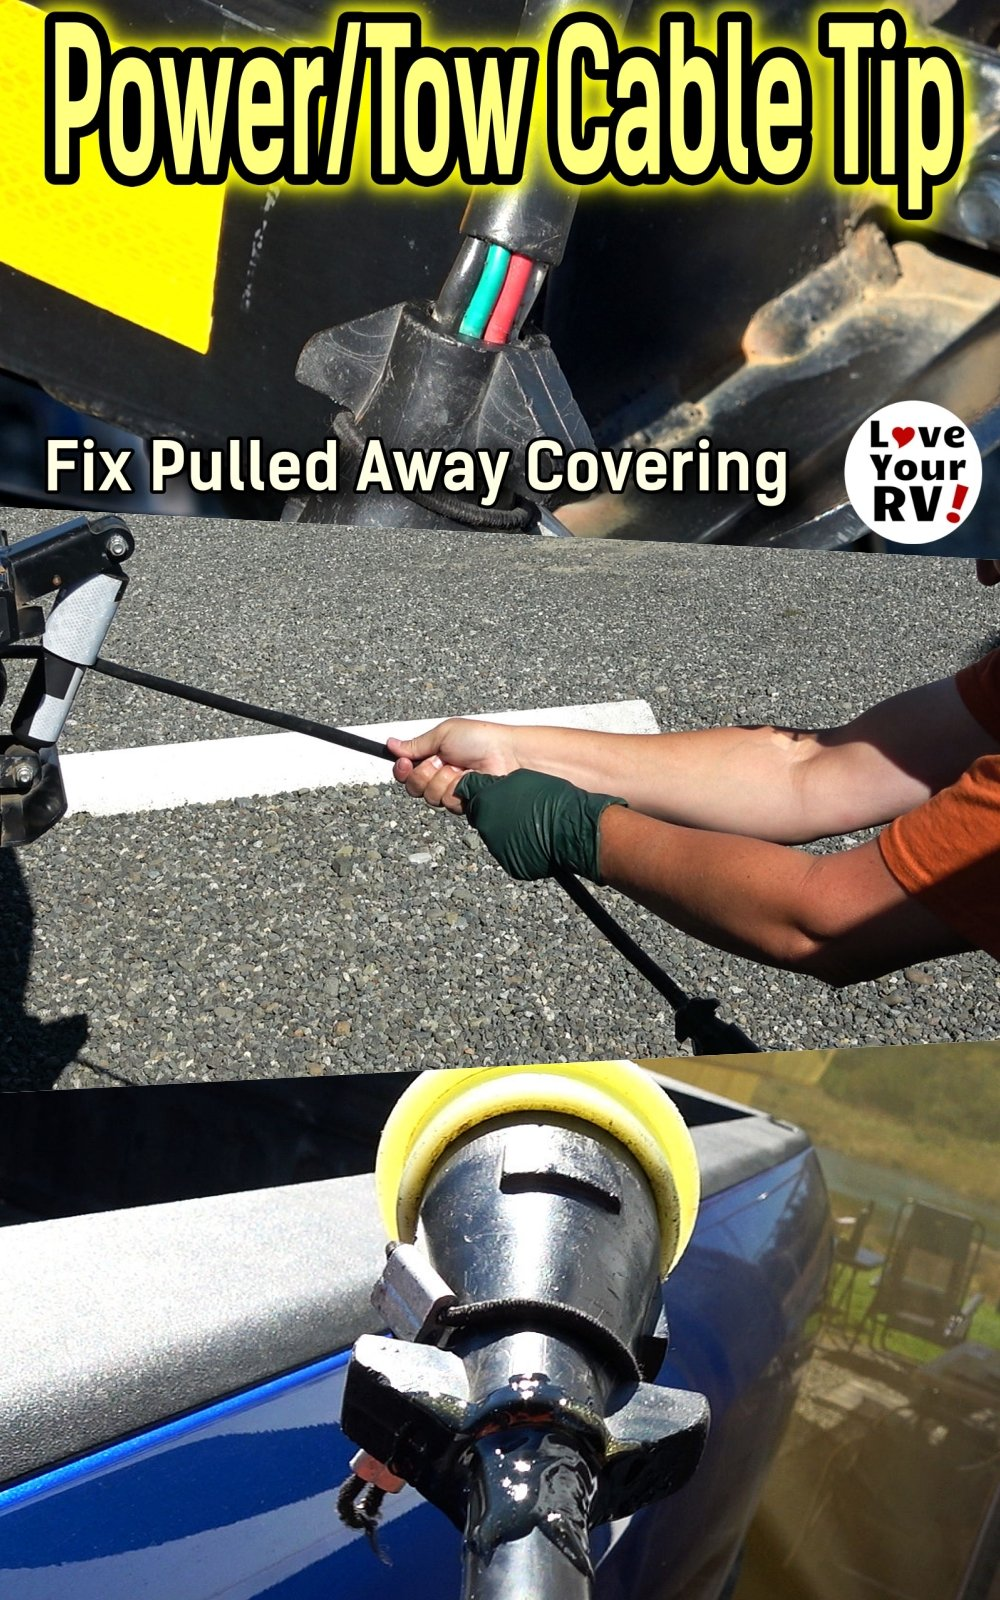 RV Power or Towing Cable Repair Tip - Fix Pulled Away Shrinking Covering